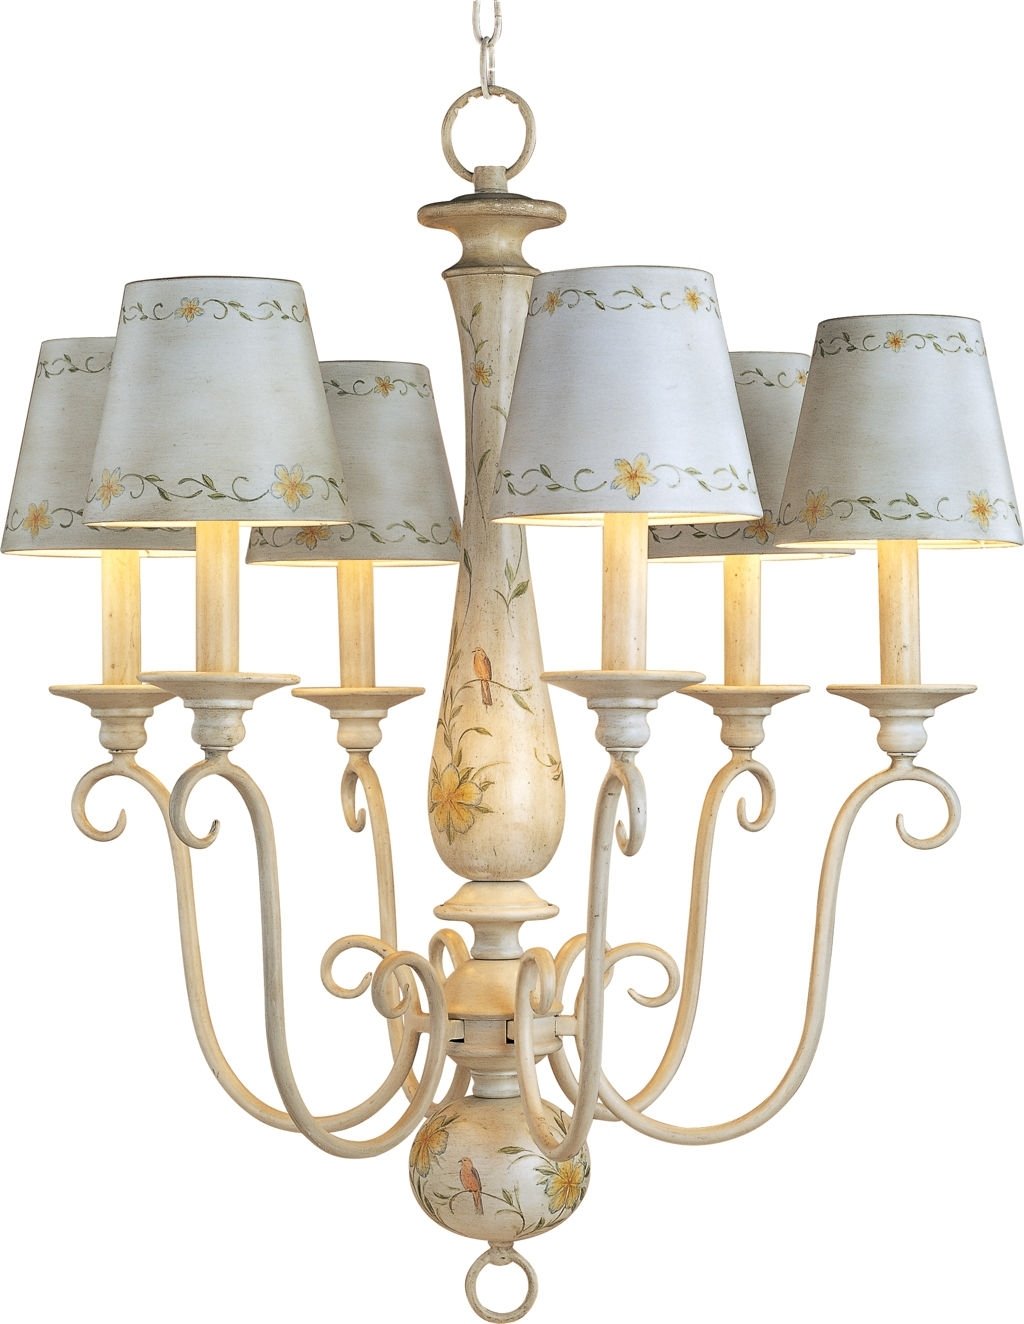 Chandeliers With Lamp Shades Within 2018 Antique French Country Mini Chandelier With Ceramic Lamp Shades And (View 8 of 20)